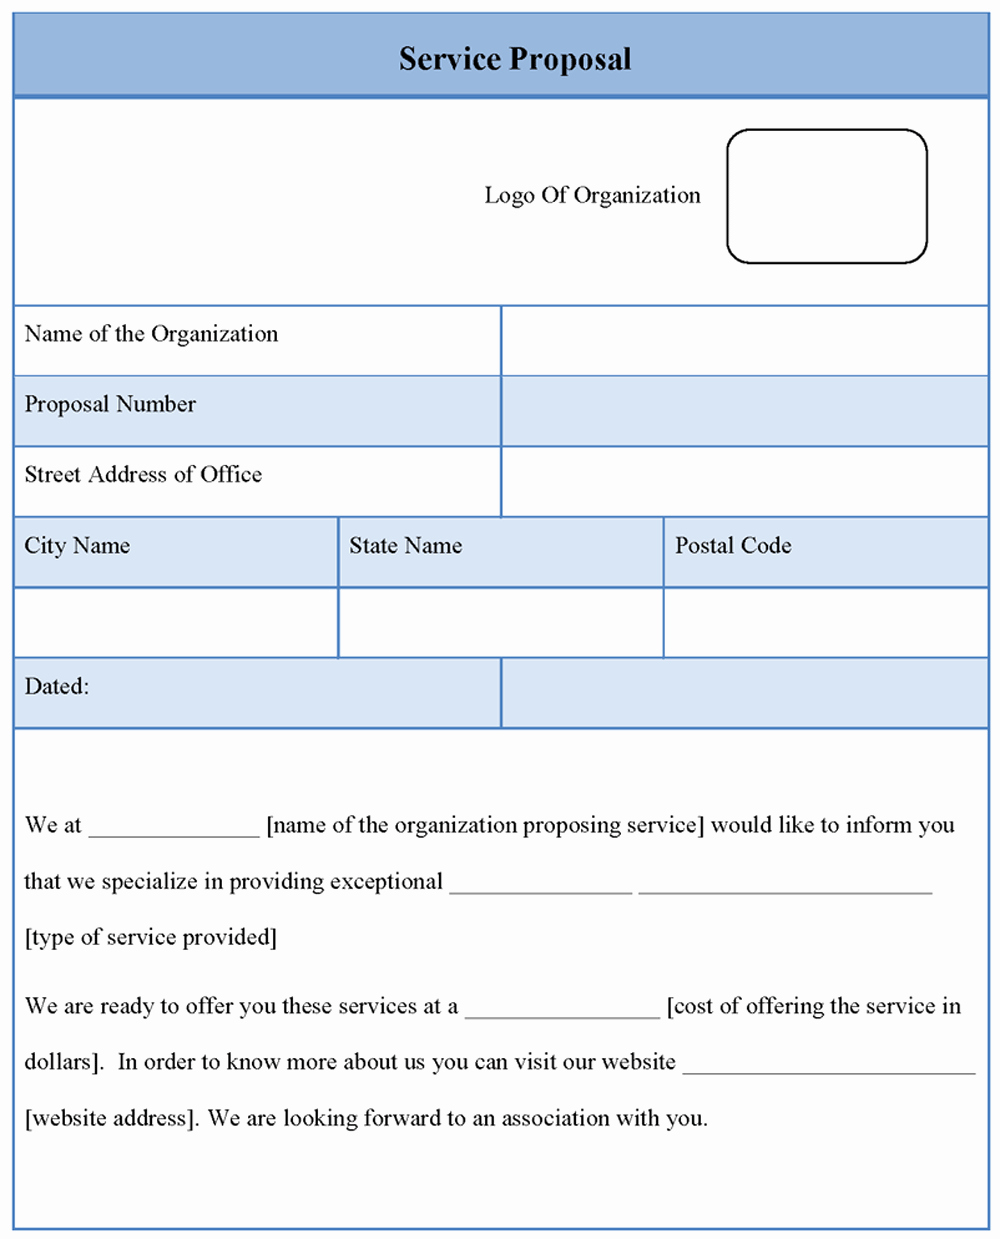 Free Proposal form Template New Free Proposal Template